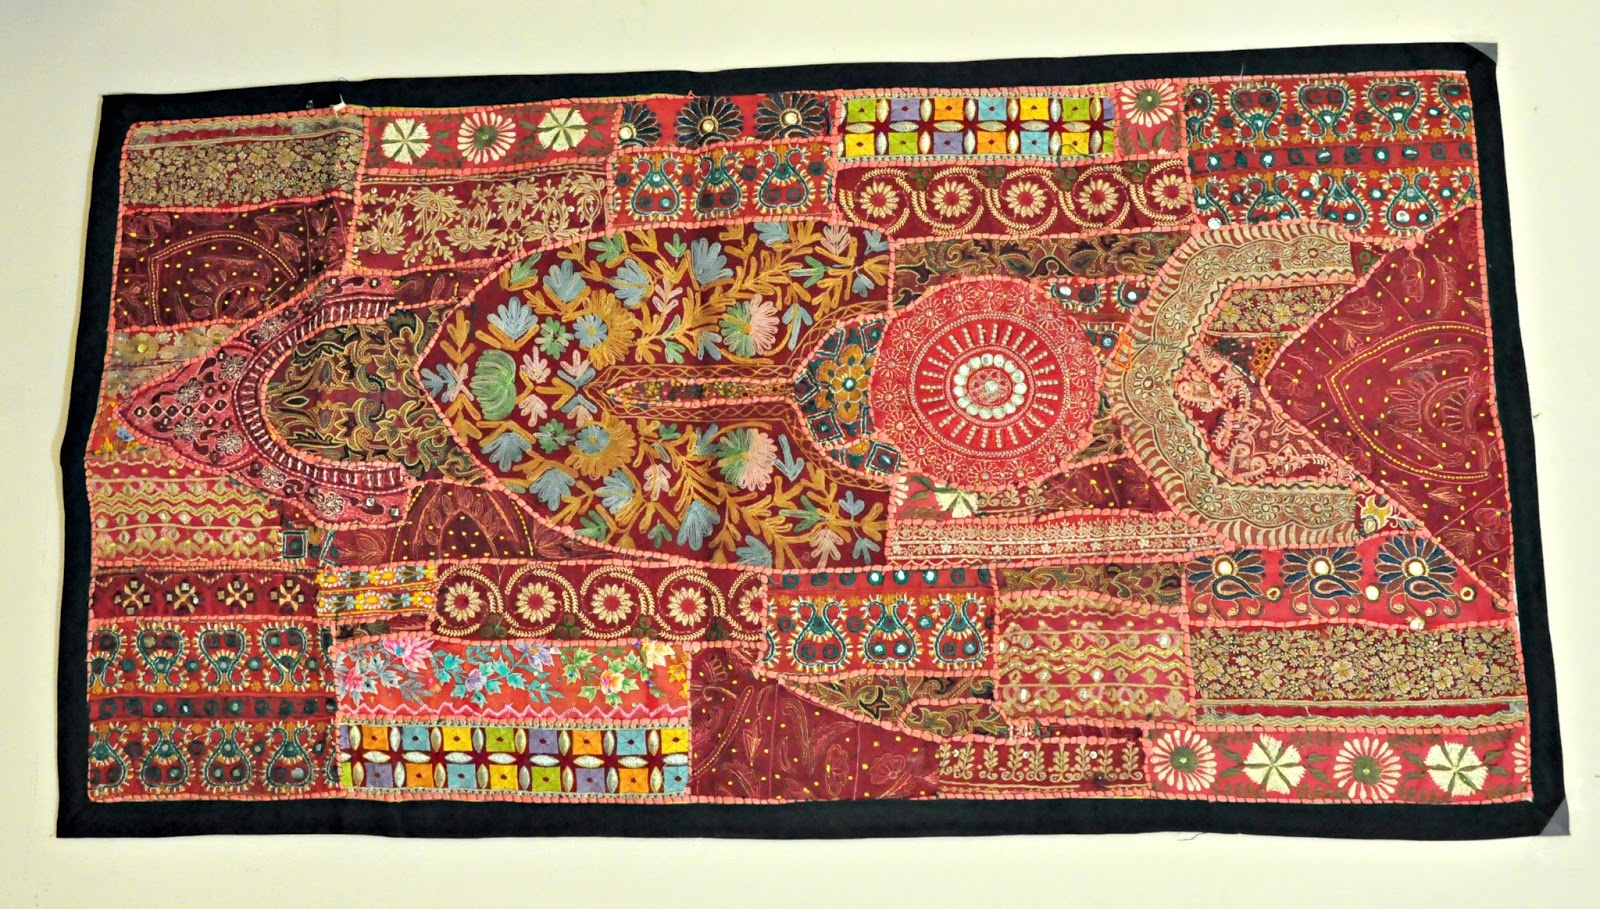 Indian Vintage Handmade Patchwork Tapestry Wall Hanging   Embroidered Table  Runner Indian Folk Art Antique Kantha Textile Banjara Mirror